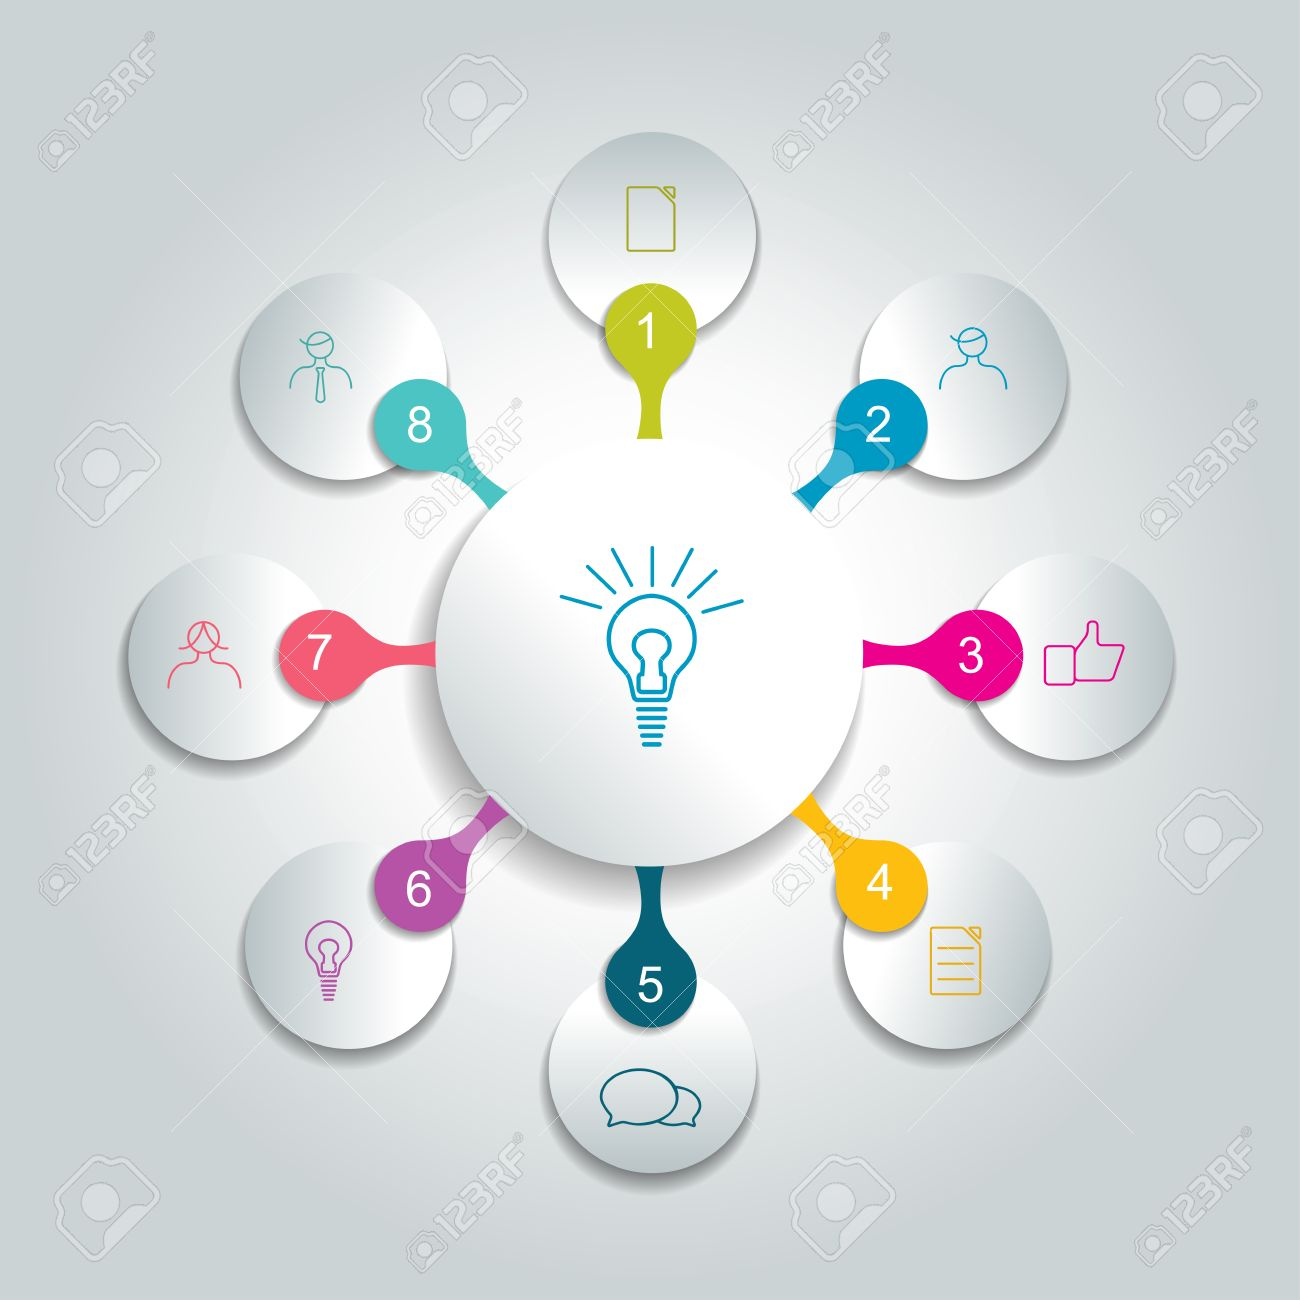 Spider Diagram Photos Images Royalty Free Spider Diagram – Spider Diagram Template